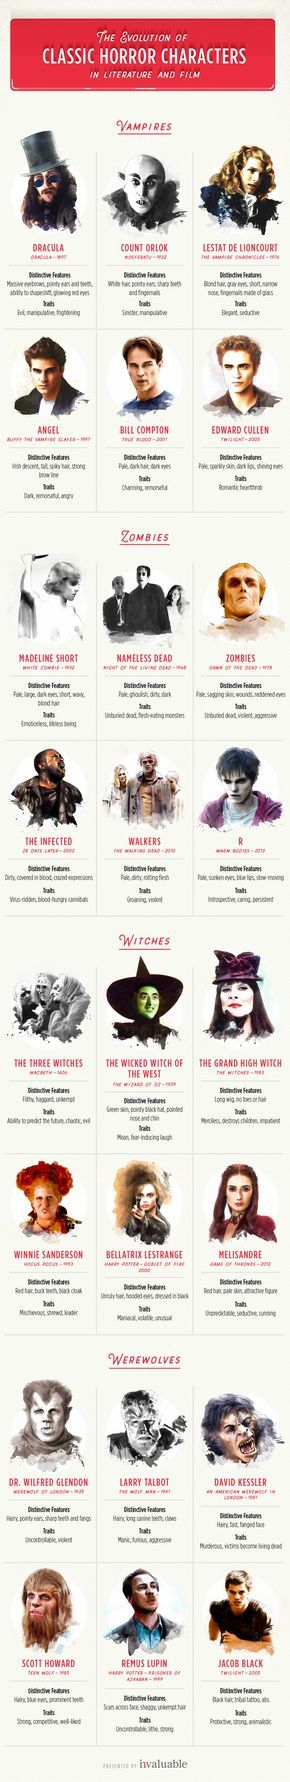 The Evolution of Classic Horror Movie Characters in Literature & Film | Scary stories have been capturing our collective imagination for centuries, through channels of storytelling such as folklore, literature and film. Through their best-known ambassadors, trace the evolution of vampires, zombies, witches and werewolves through centuries of cultural depictions, just in time for Halloween.